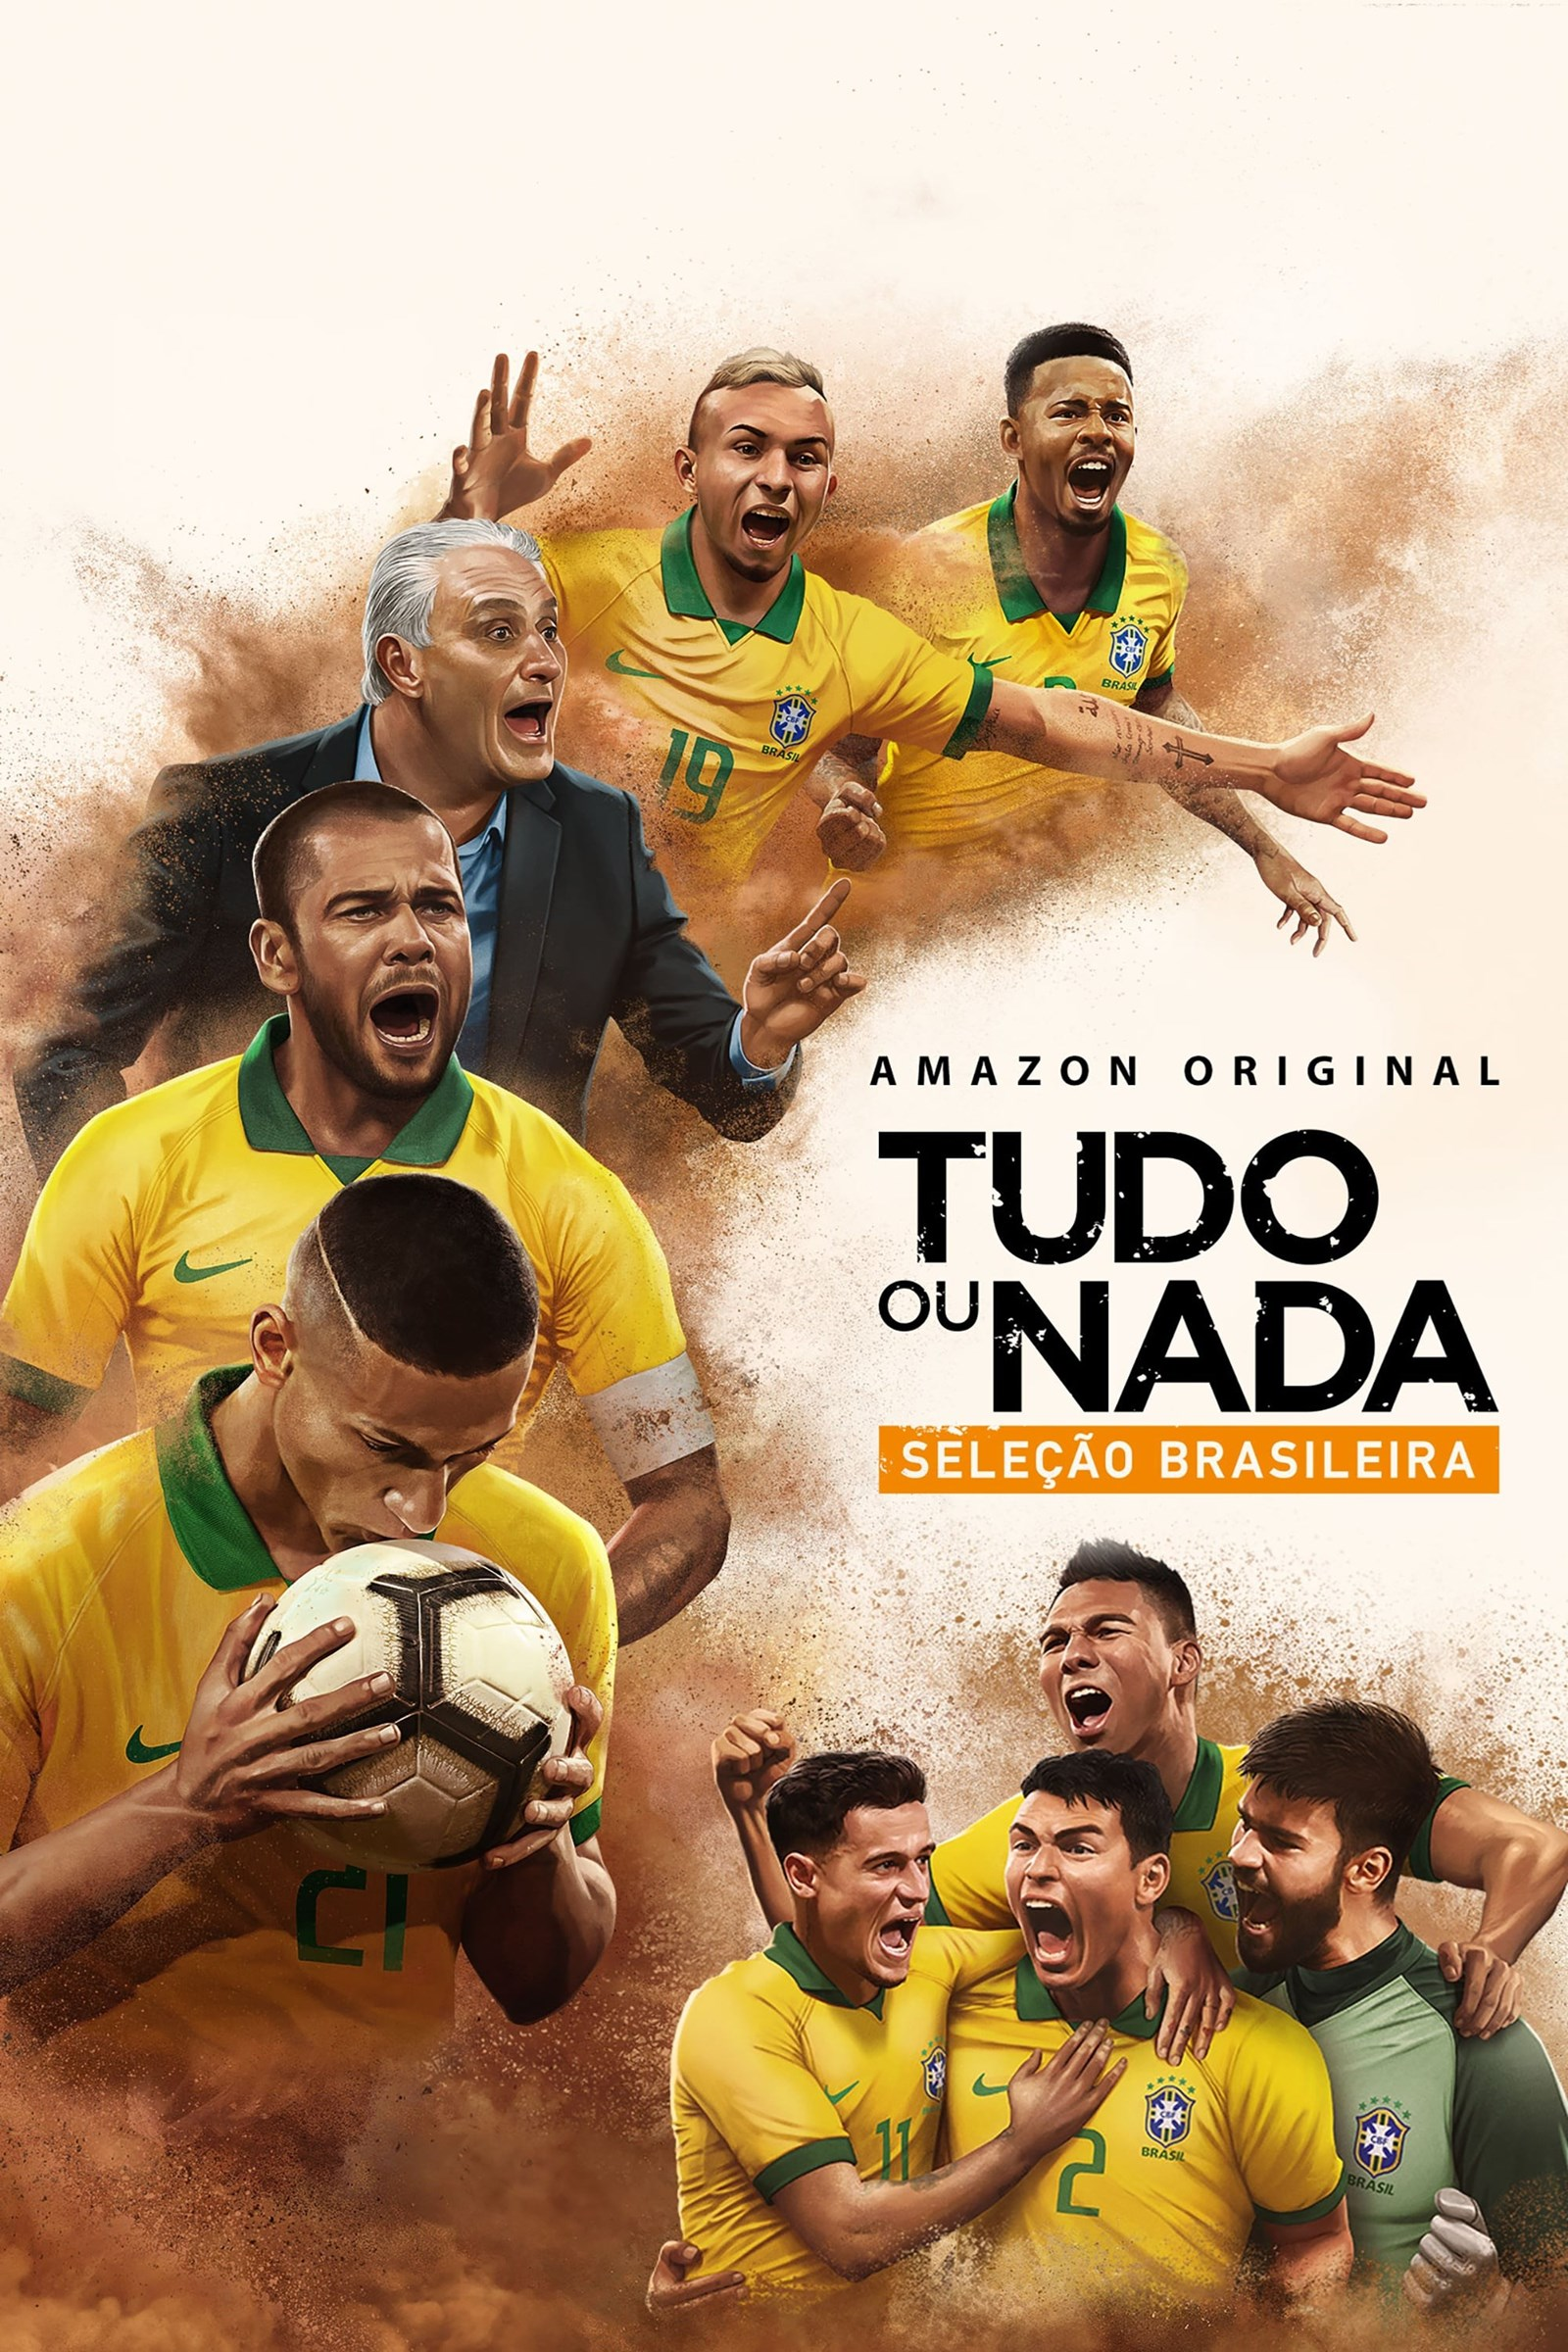 All Or Nothing Brazil National Team S01 PORTUGUESE 1080p AMZN WEBRip DDP5.1 x264-IJP | 17 GB |